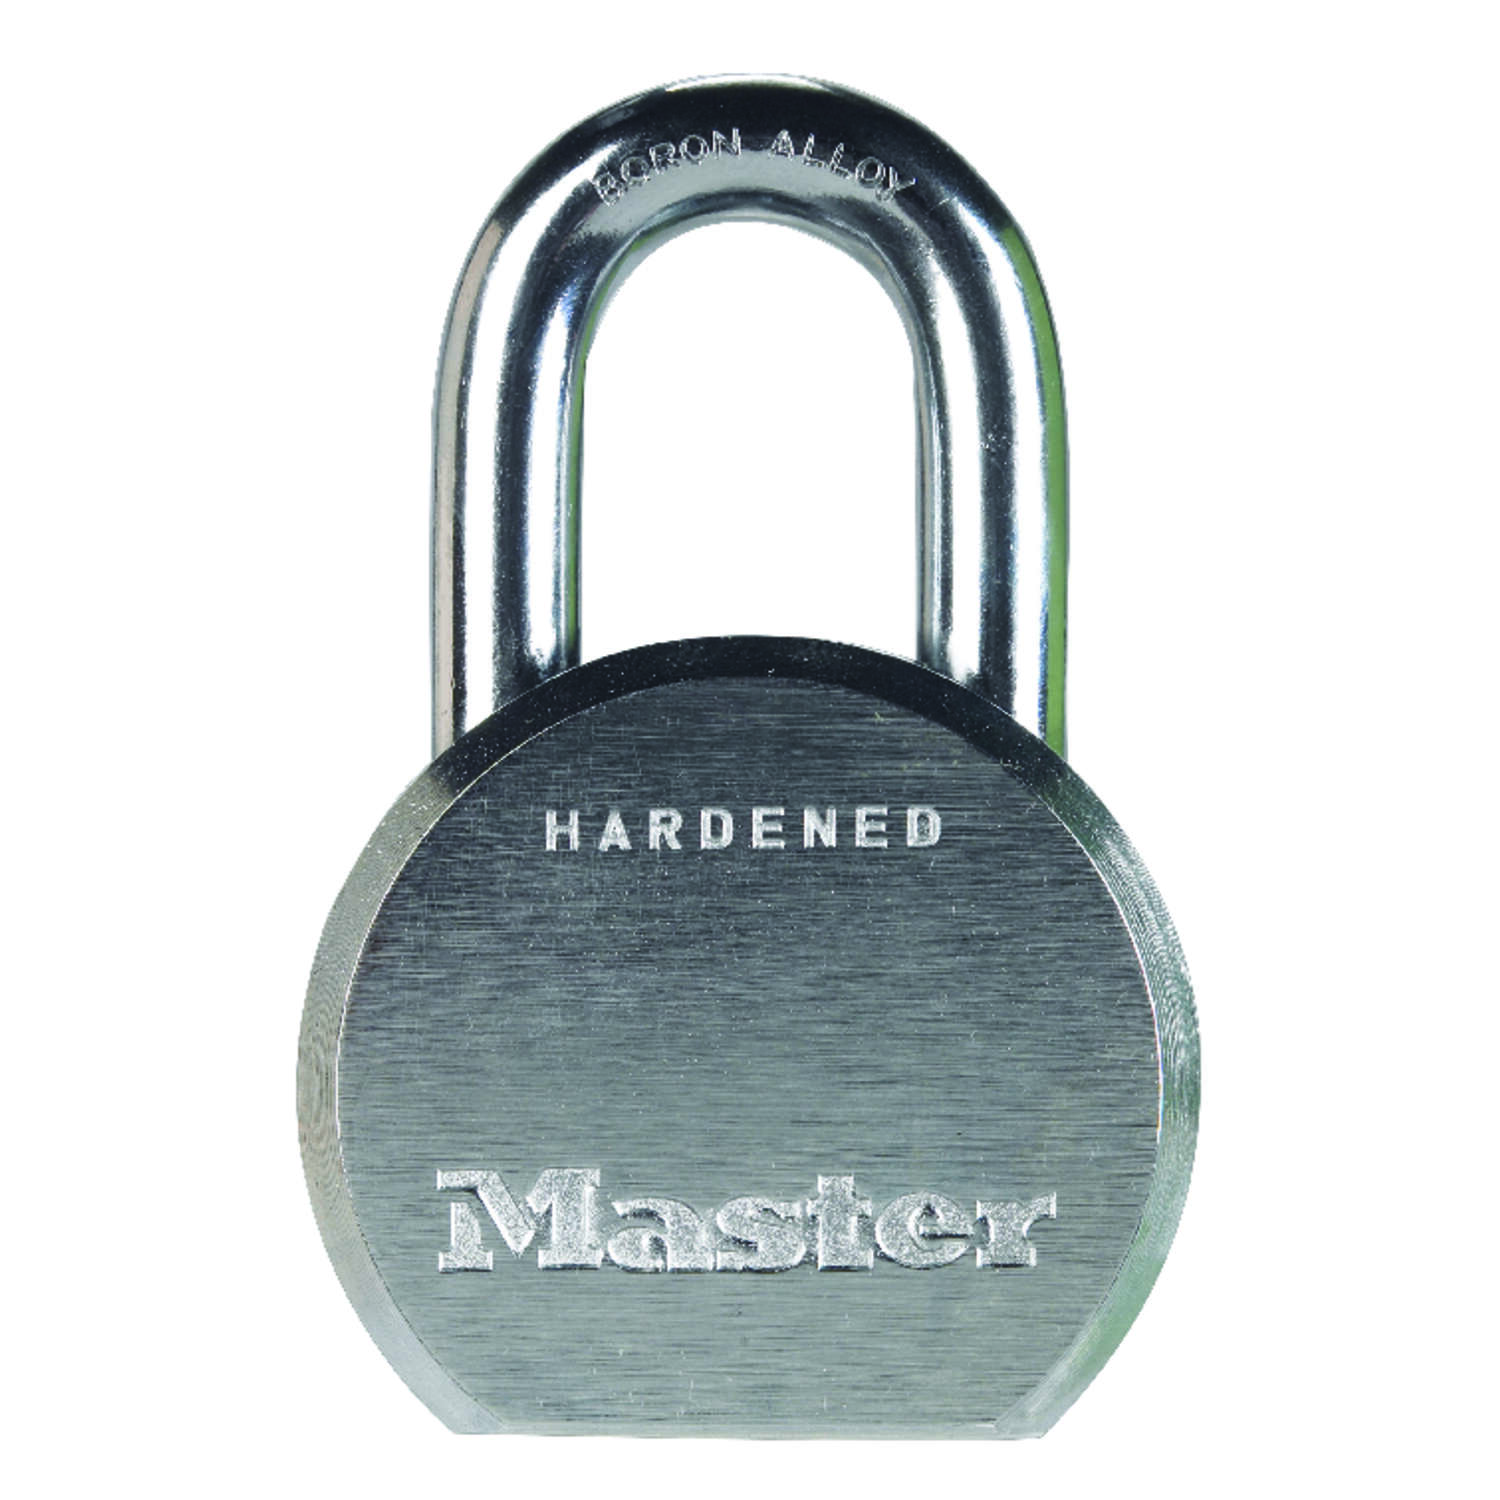 Master Lock  2-5/32 in. H x 2-1/2 in. W x 1-3/32 in. L Steel  5-Pin Cylinder  Re-Keyable Padlock  1